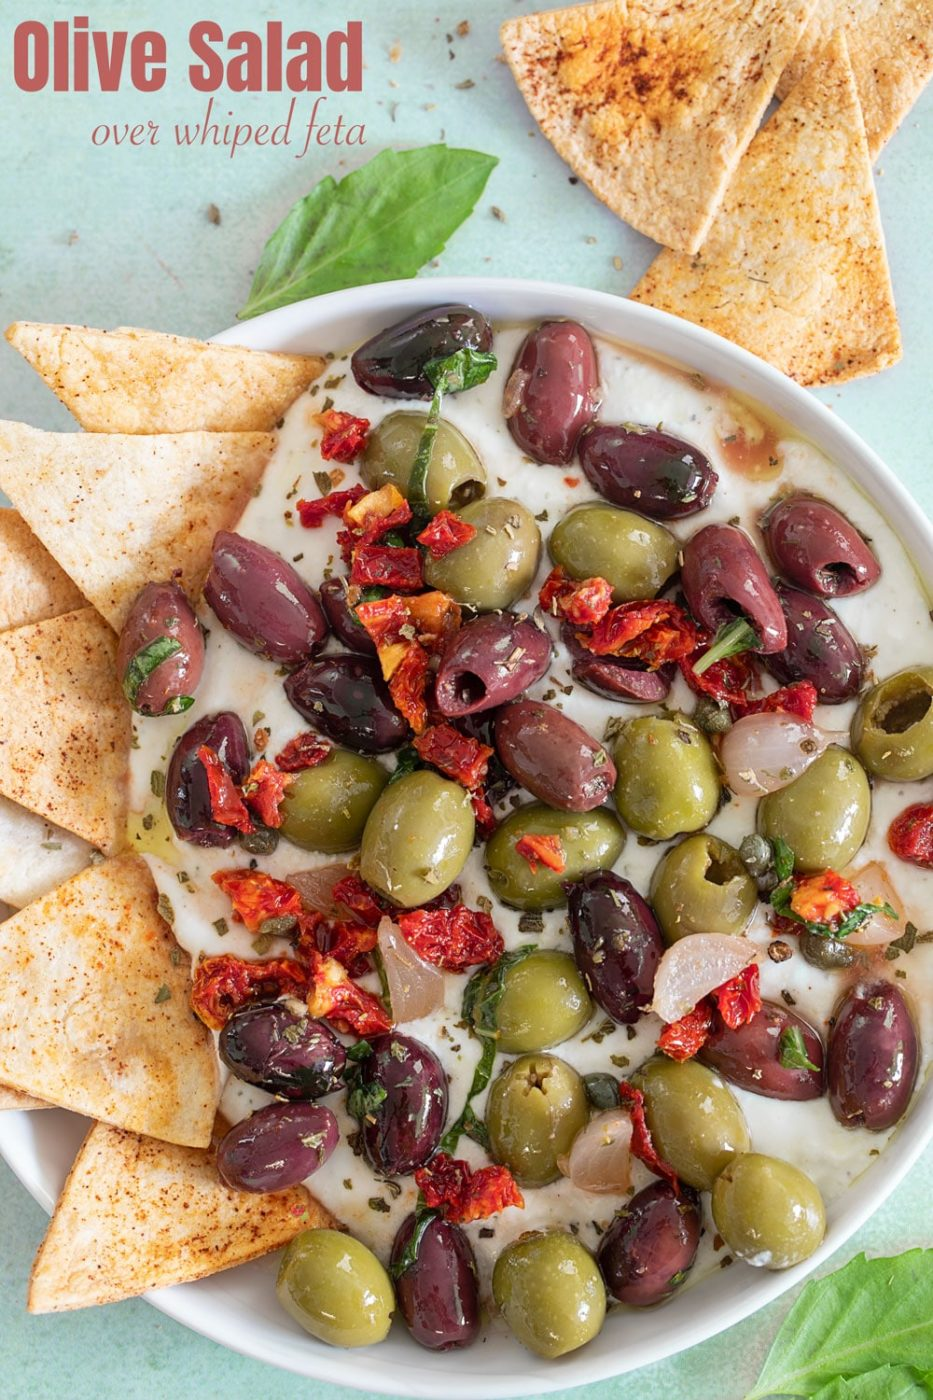 Top view of olive salad on a whipped feta dip with a tortilla chips on inserted on the left side of the dip